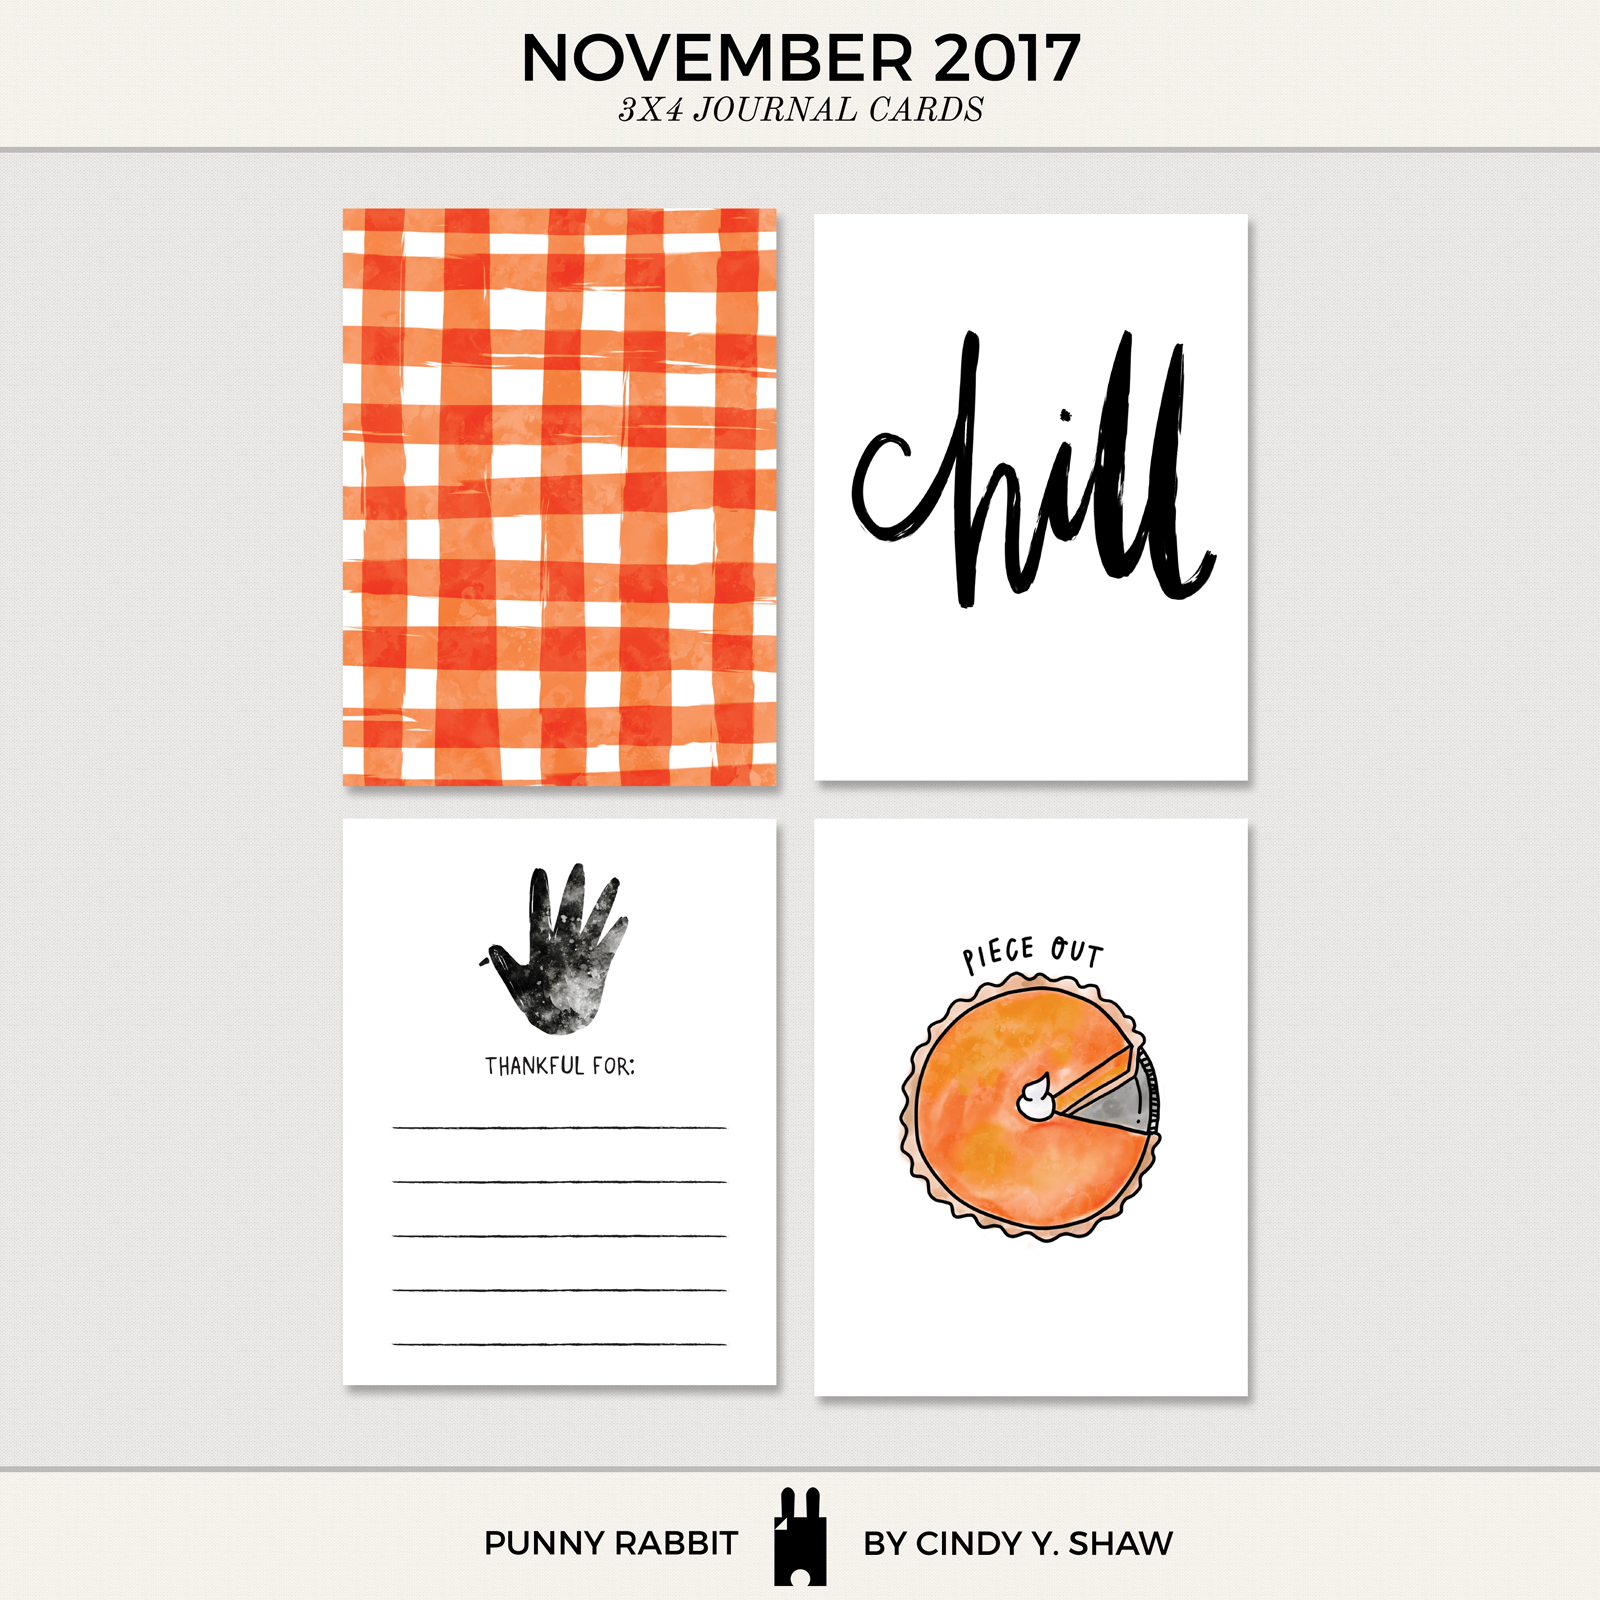 Punny-Rabbit-November-2017-Journal-Cards-Preview.png